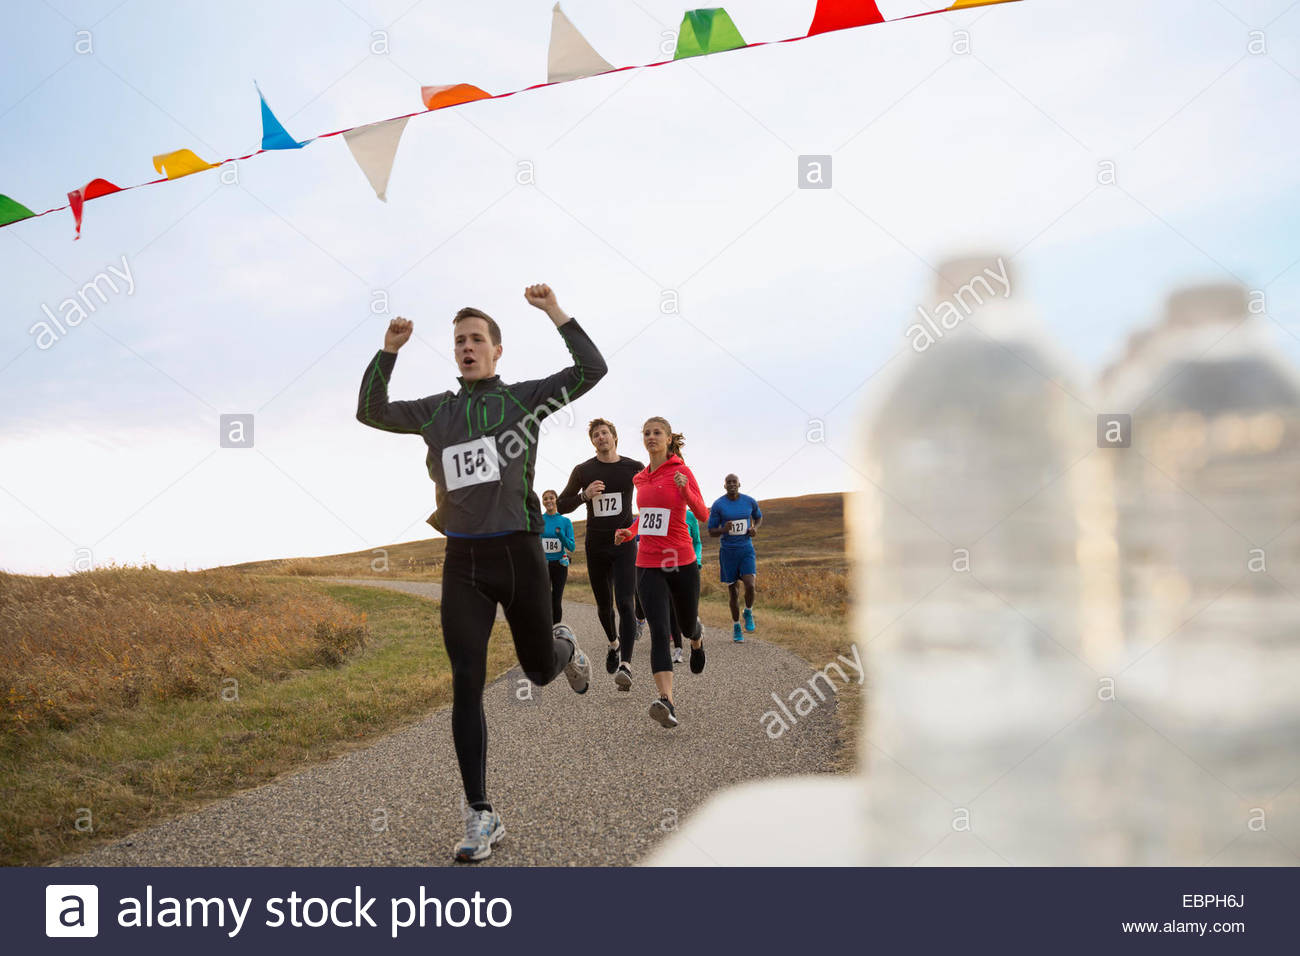 Cheering runner approaching finish line - Stock Image